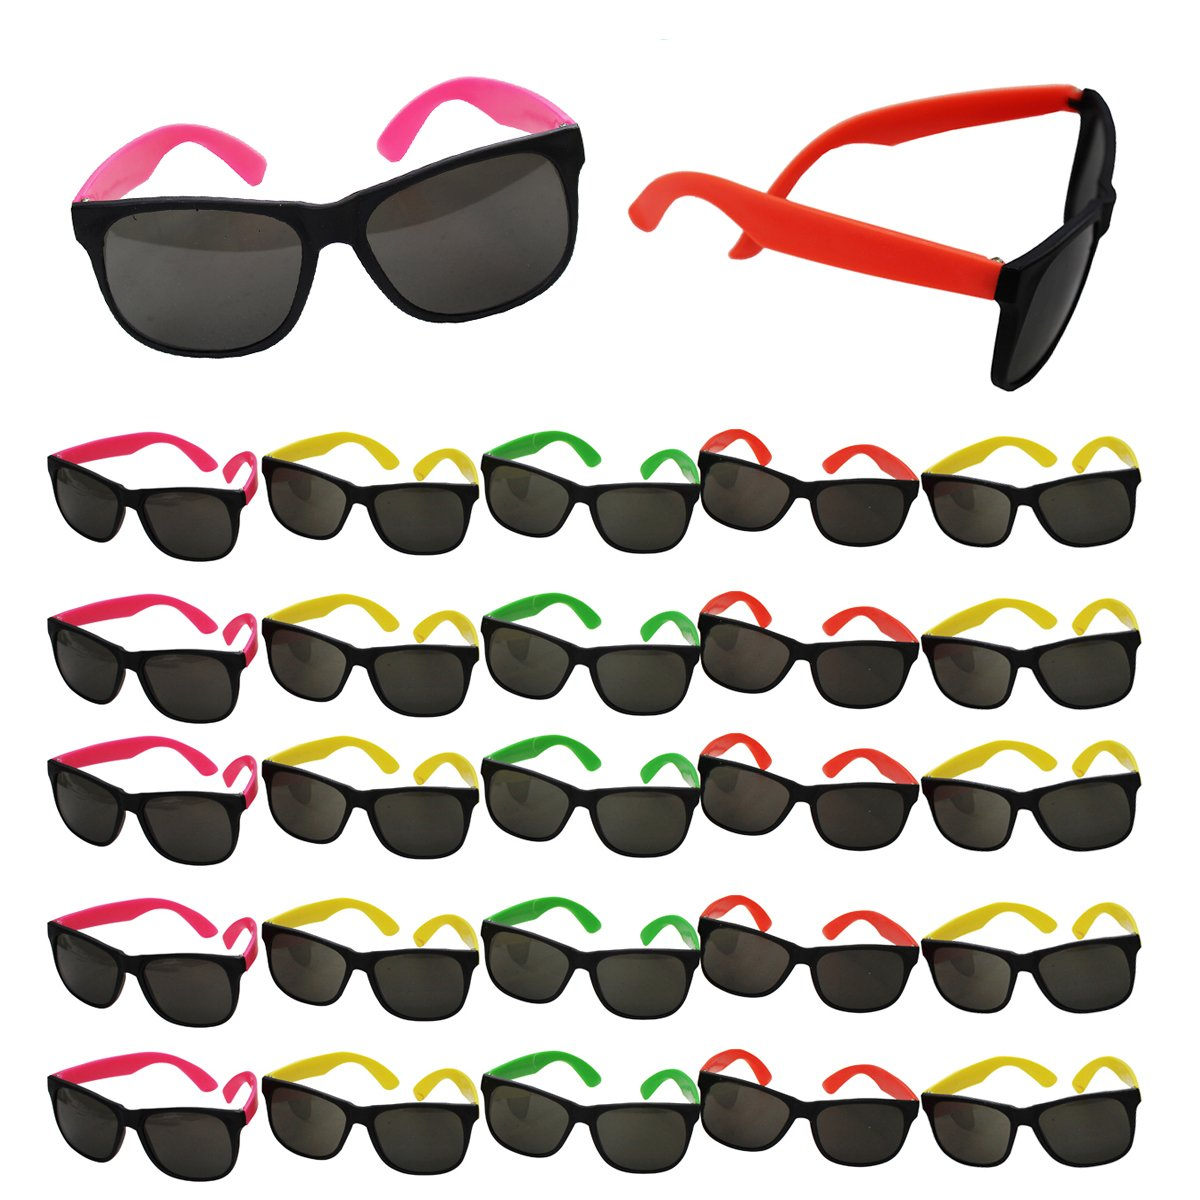 8fec2087ab Get Quotations · Tigerdoe Neon Sunglasses Party Favors - Set of 25 Plastic  Neon Shades for Kids and Adults